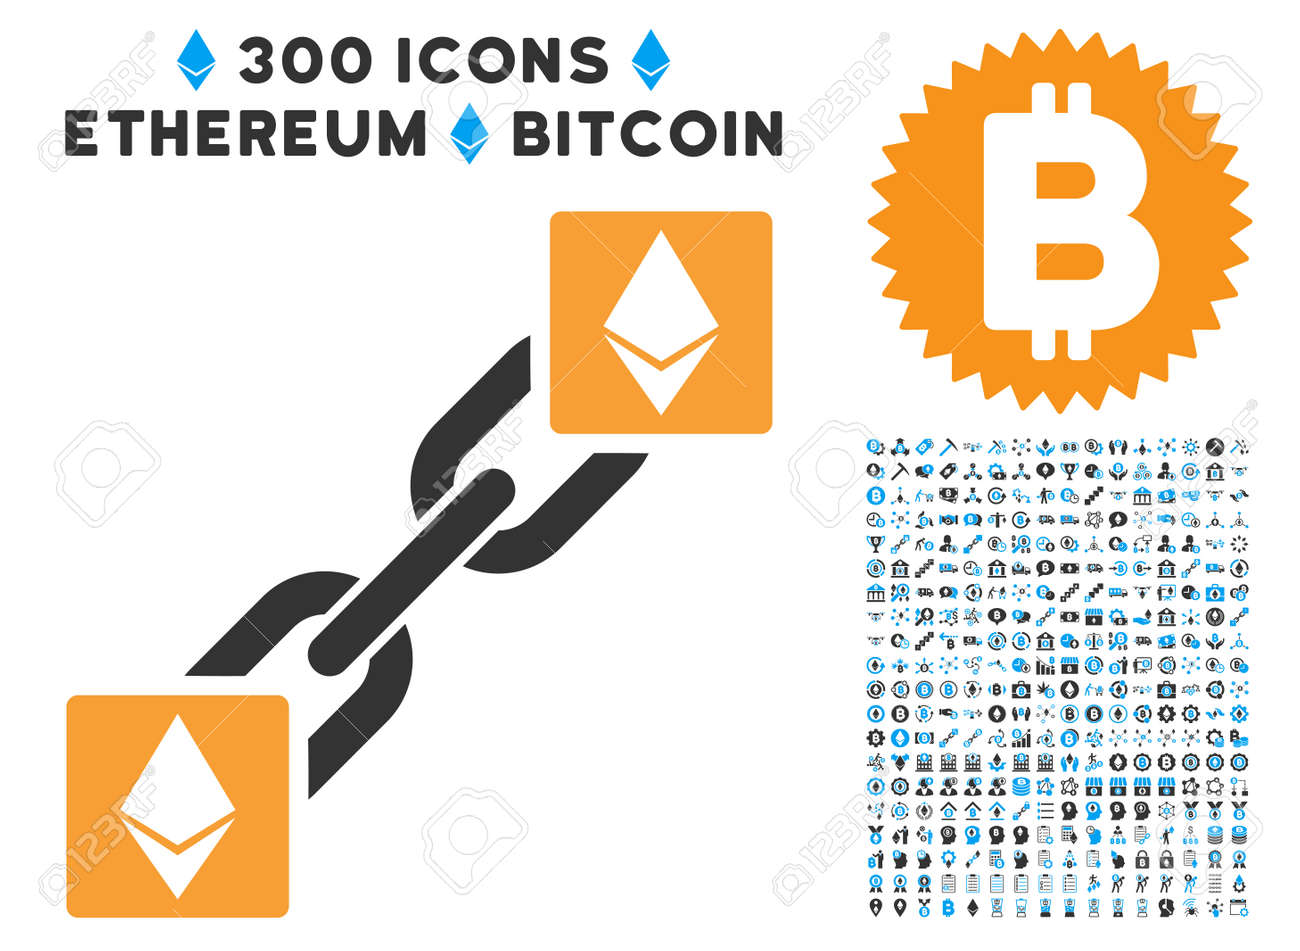 Ethereum Blockchain Icon With 300 Cryptocurrency Smart Contract Images Vector